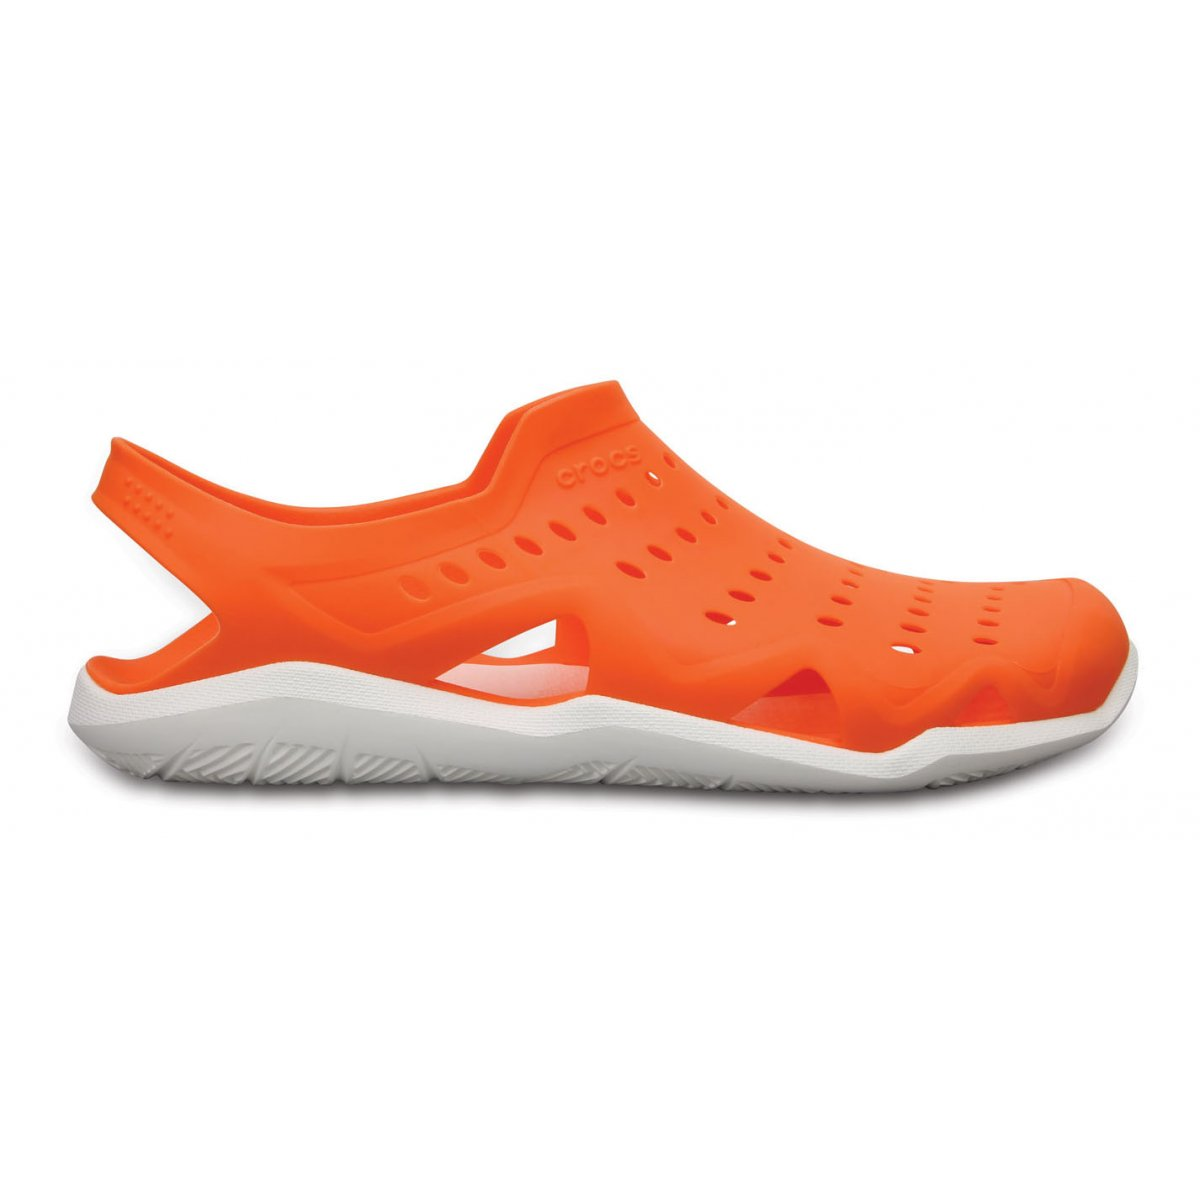 Crocs sandalo da uomo swiftwater WAVE M 203963